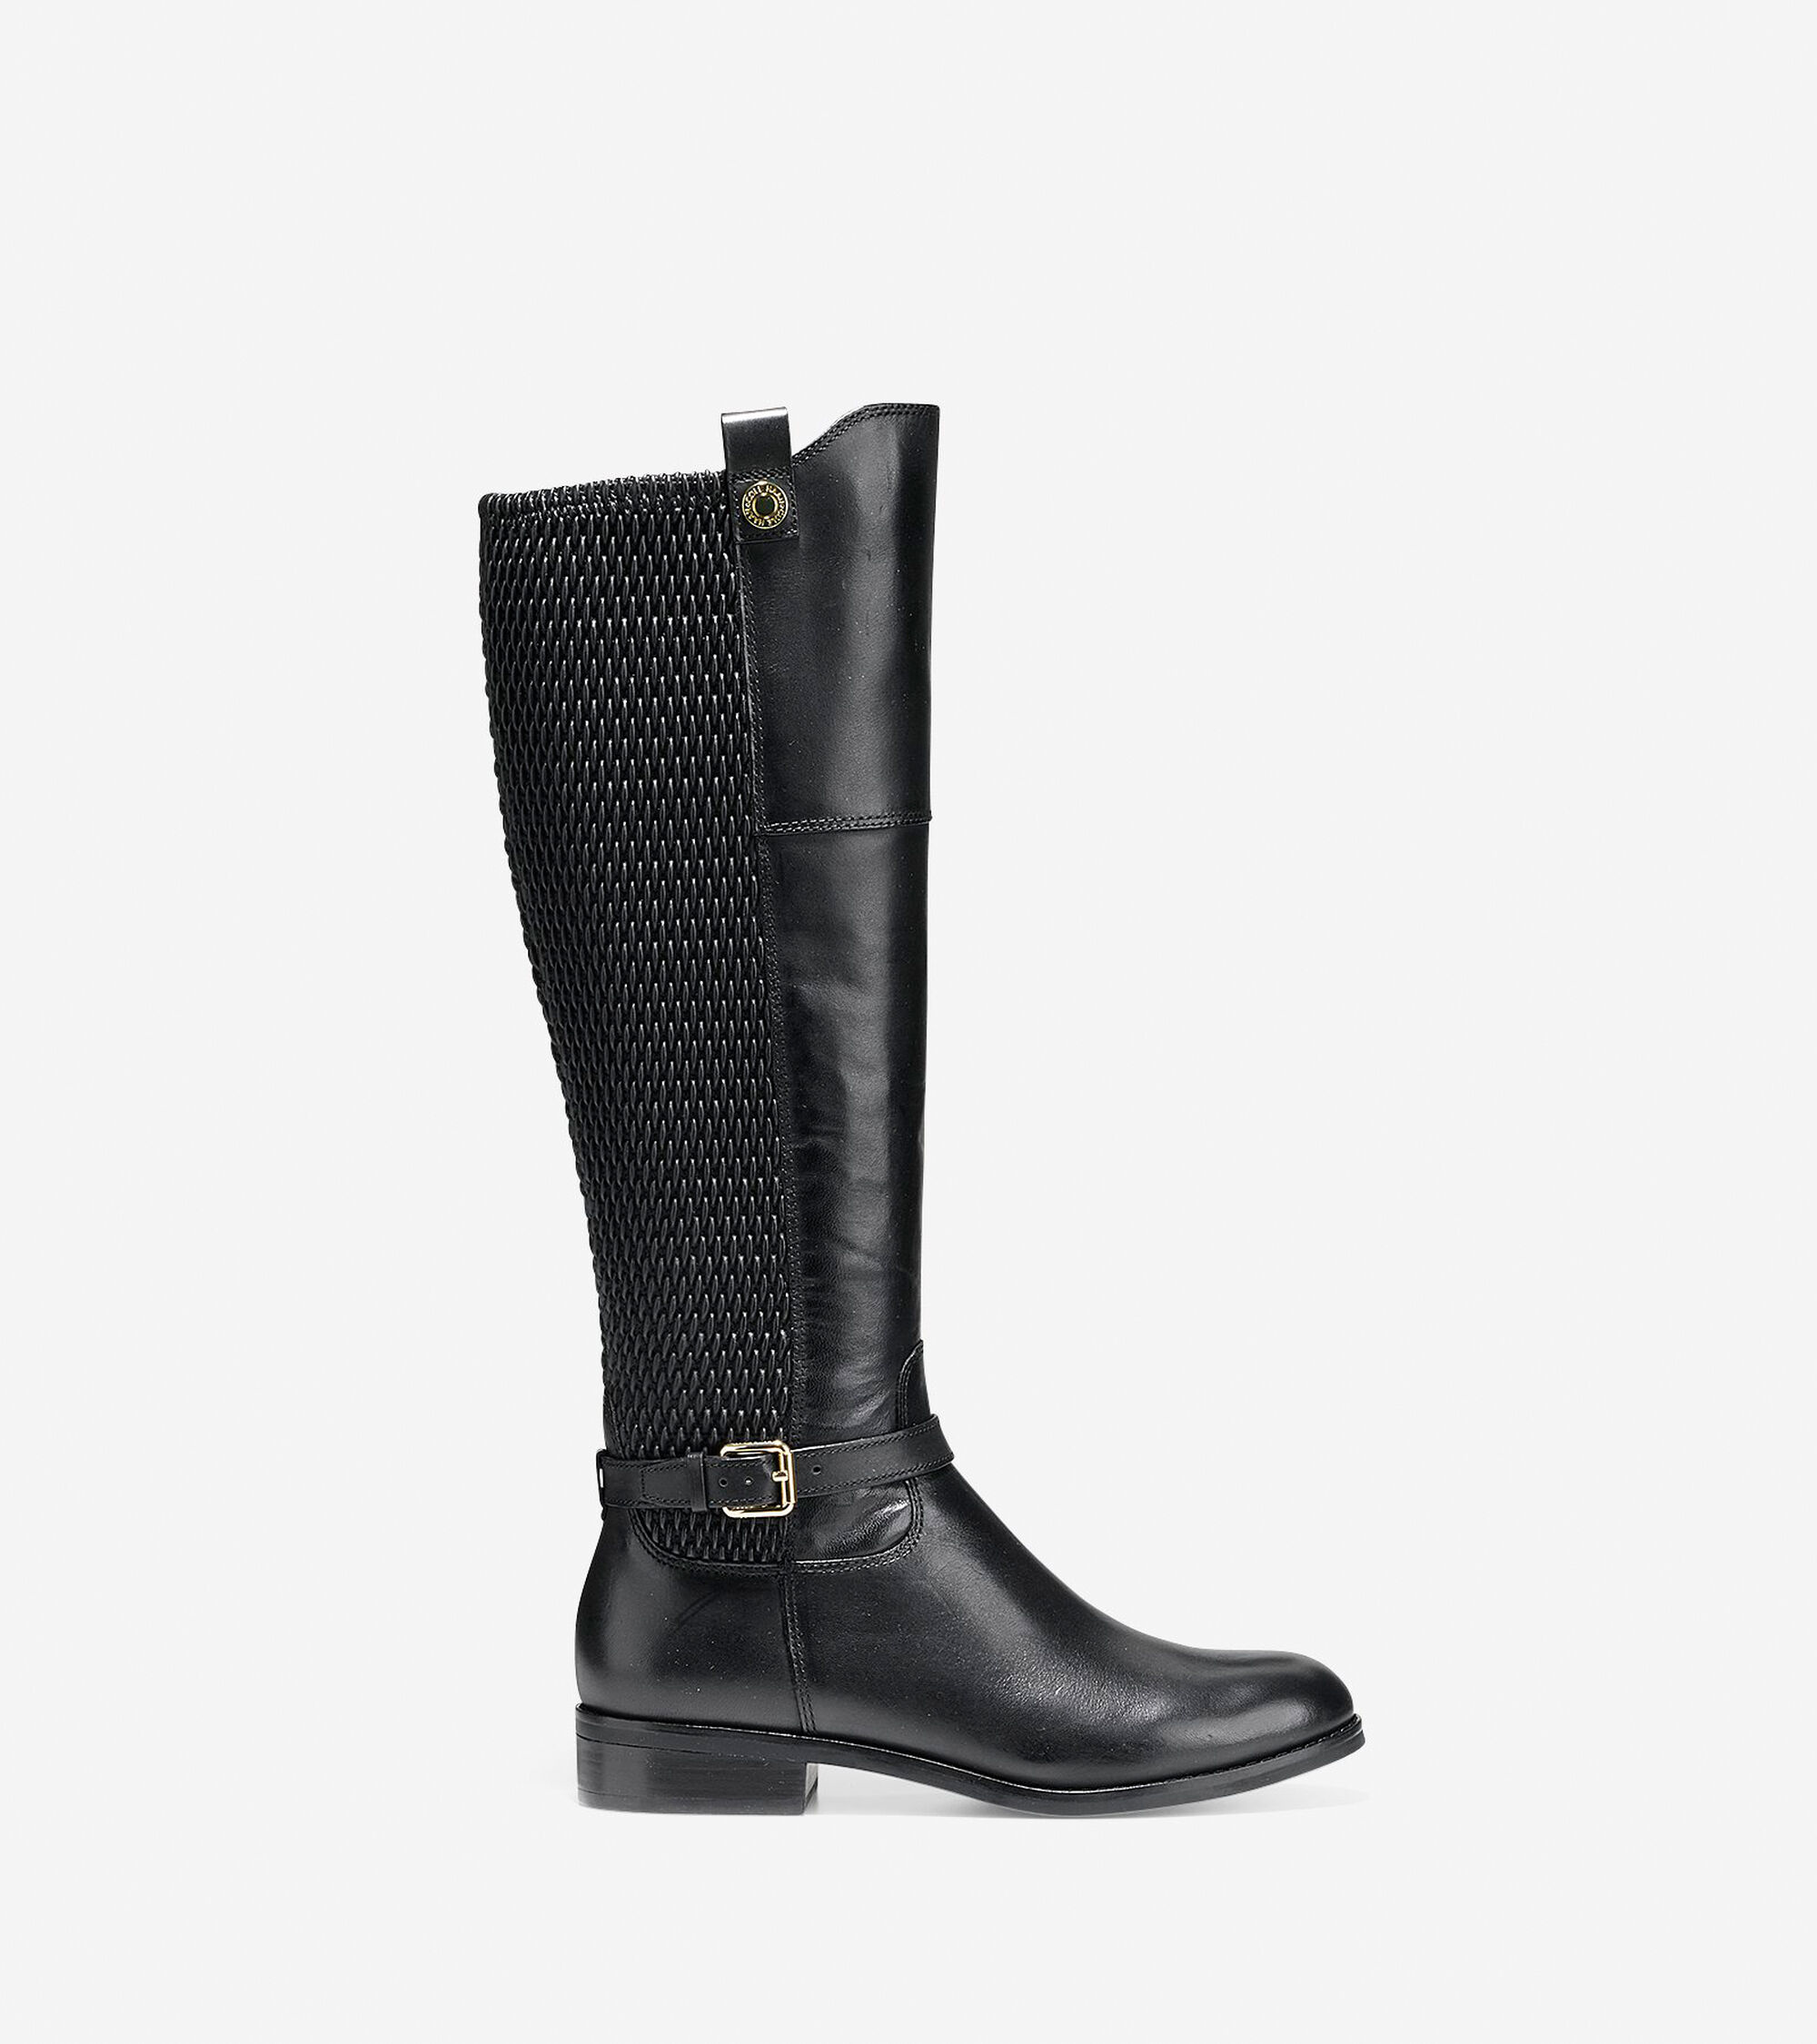 7d3e5cfb4 Women s Galina Boots in Black Leather